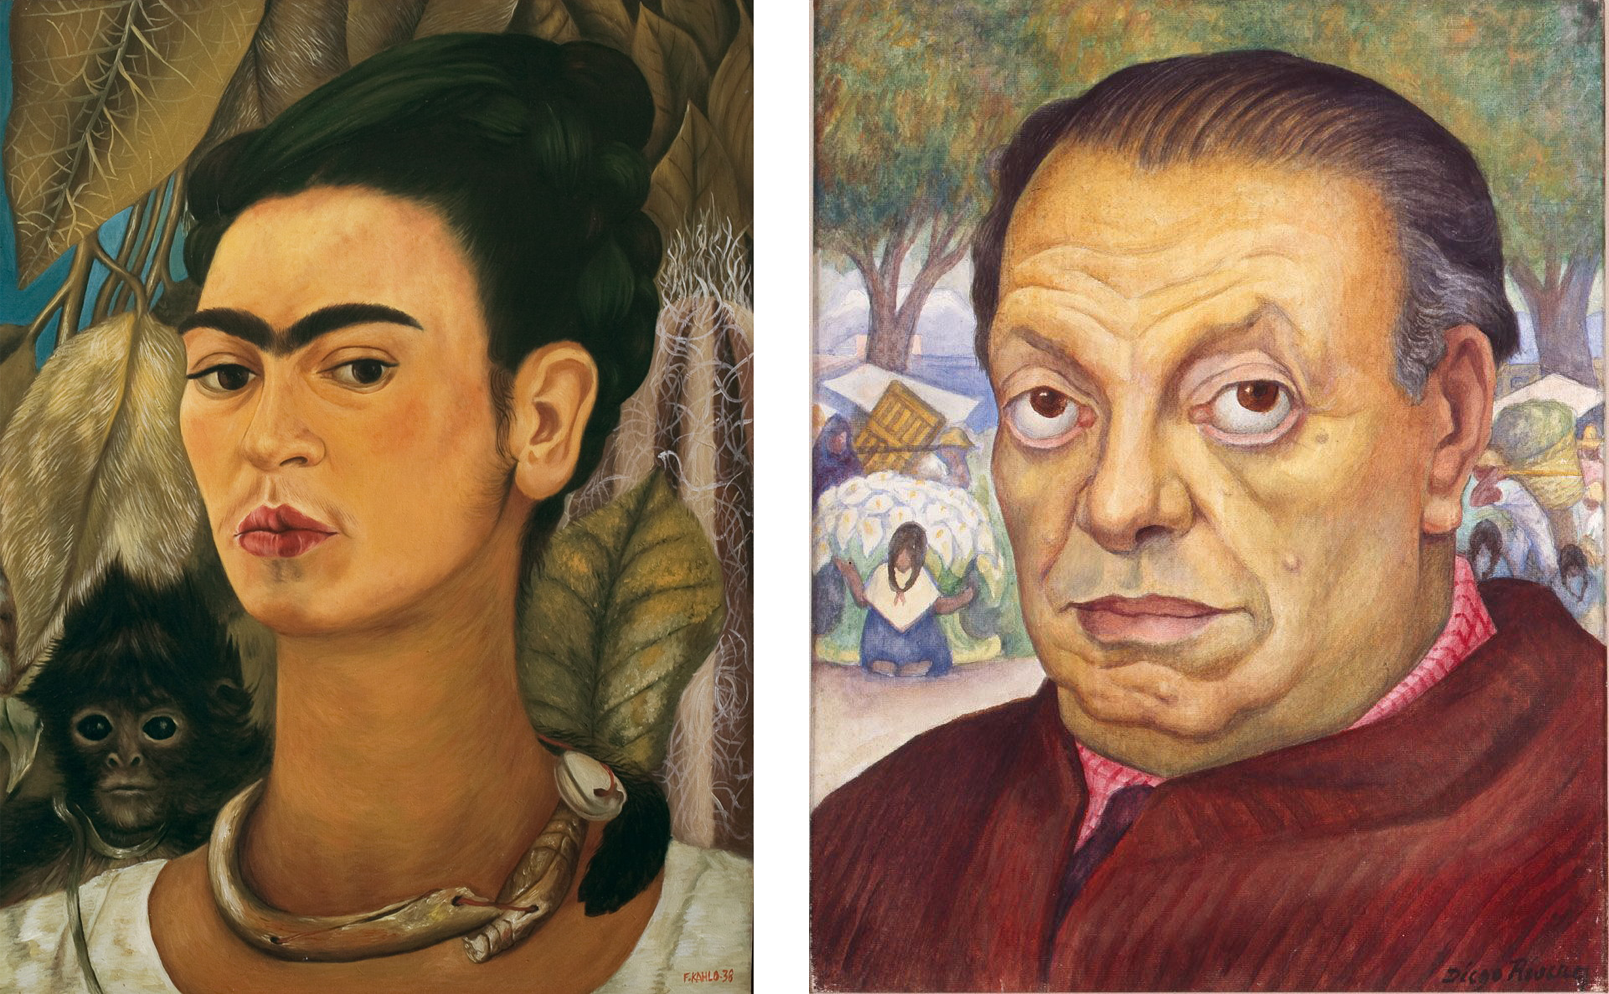 Left: Frida Kahlo,  Self-Portrait with Monkey  - 1938 ;  Right; Diego Rivera,  Self-Portrait  - 1949